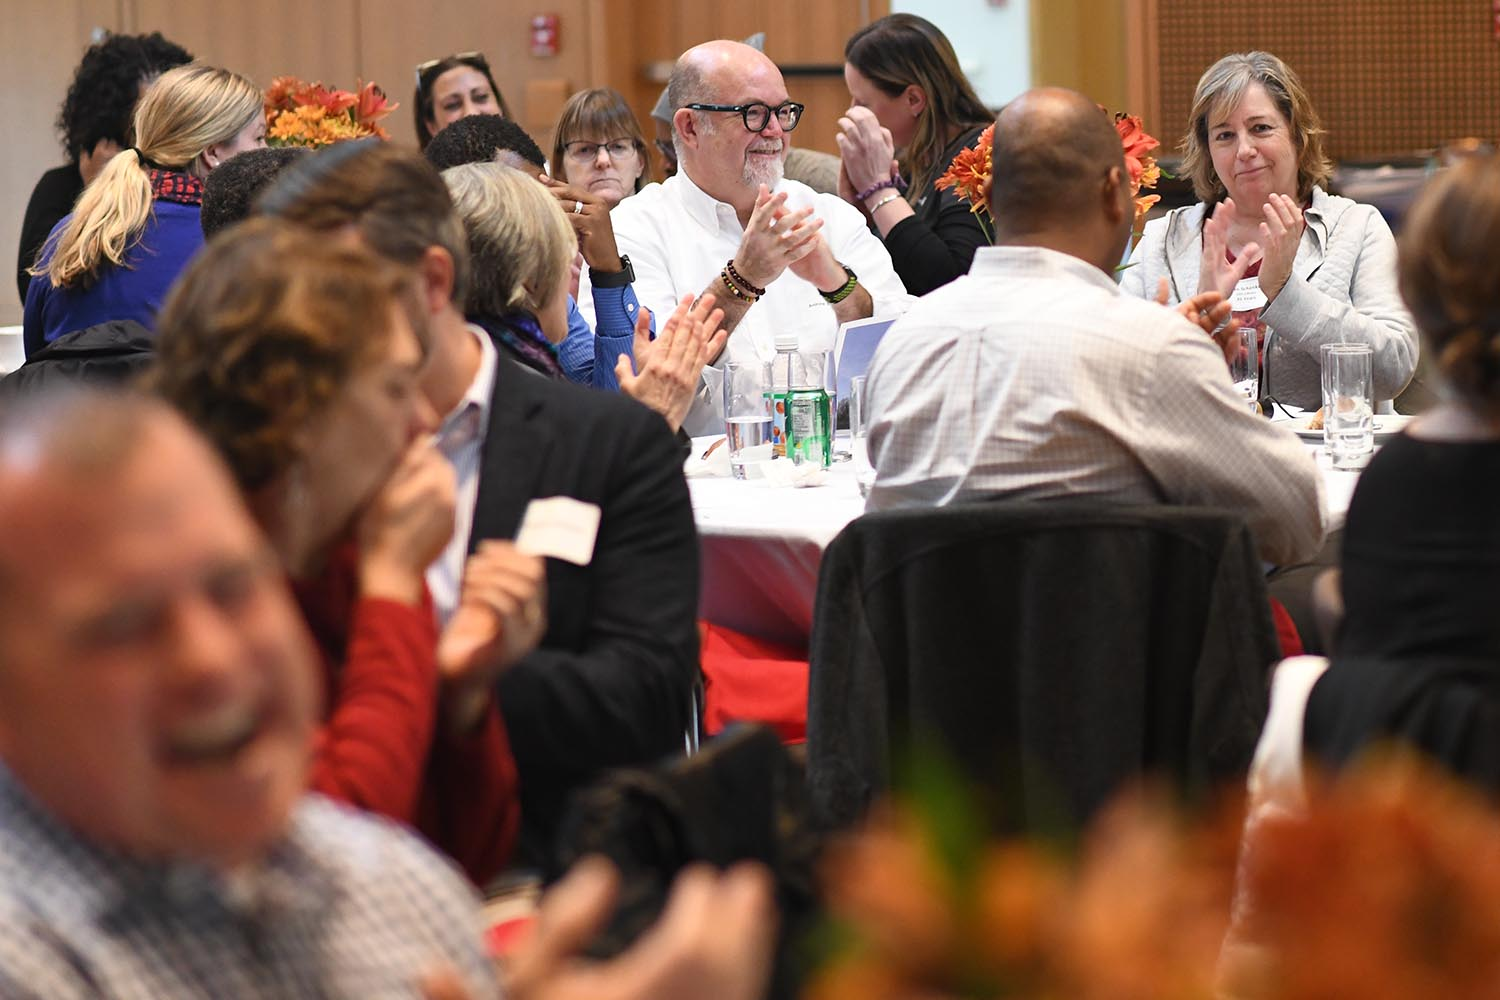 On Nov. 18, the Office of Human Resources hosted its annual Staff Recognition Luncheon in Beckham Hall.